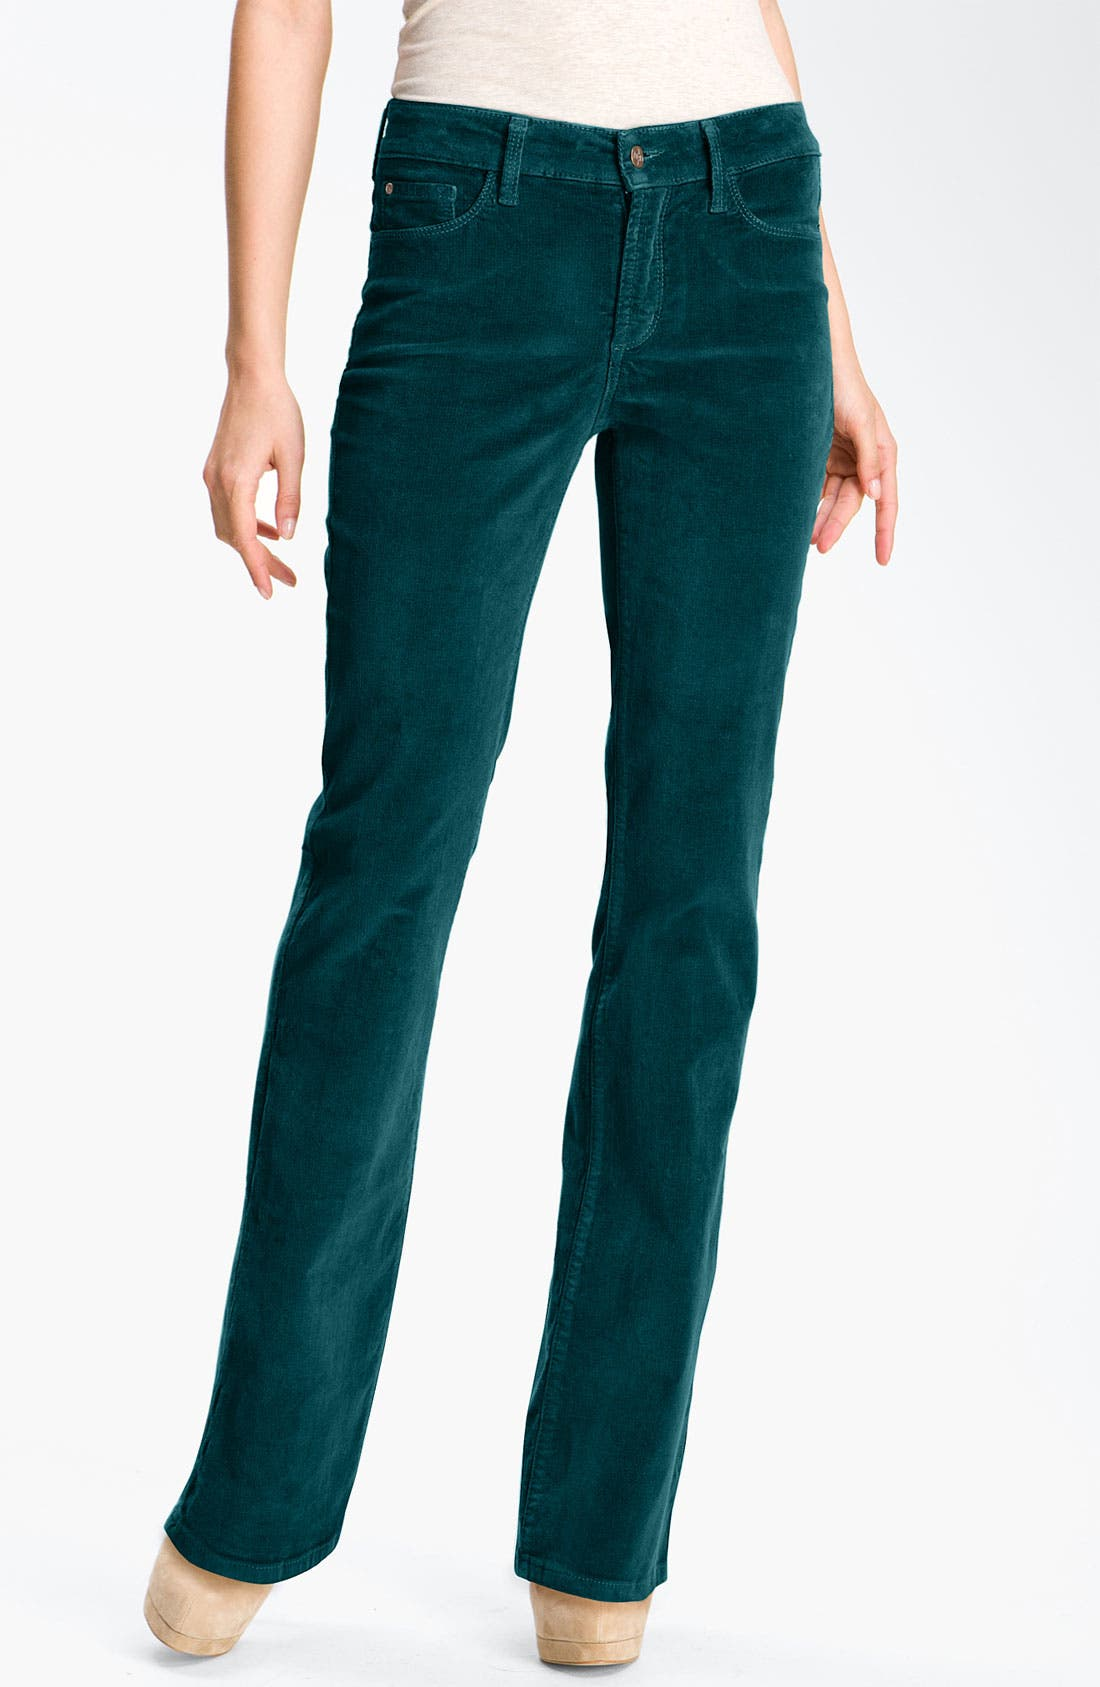 Alternate Image 1 Selected - NYDJ Bootcut Corduroy Jeans